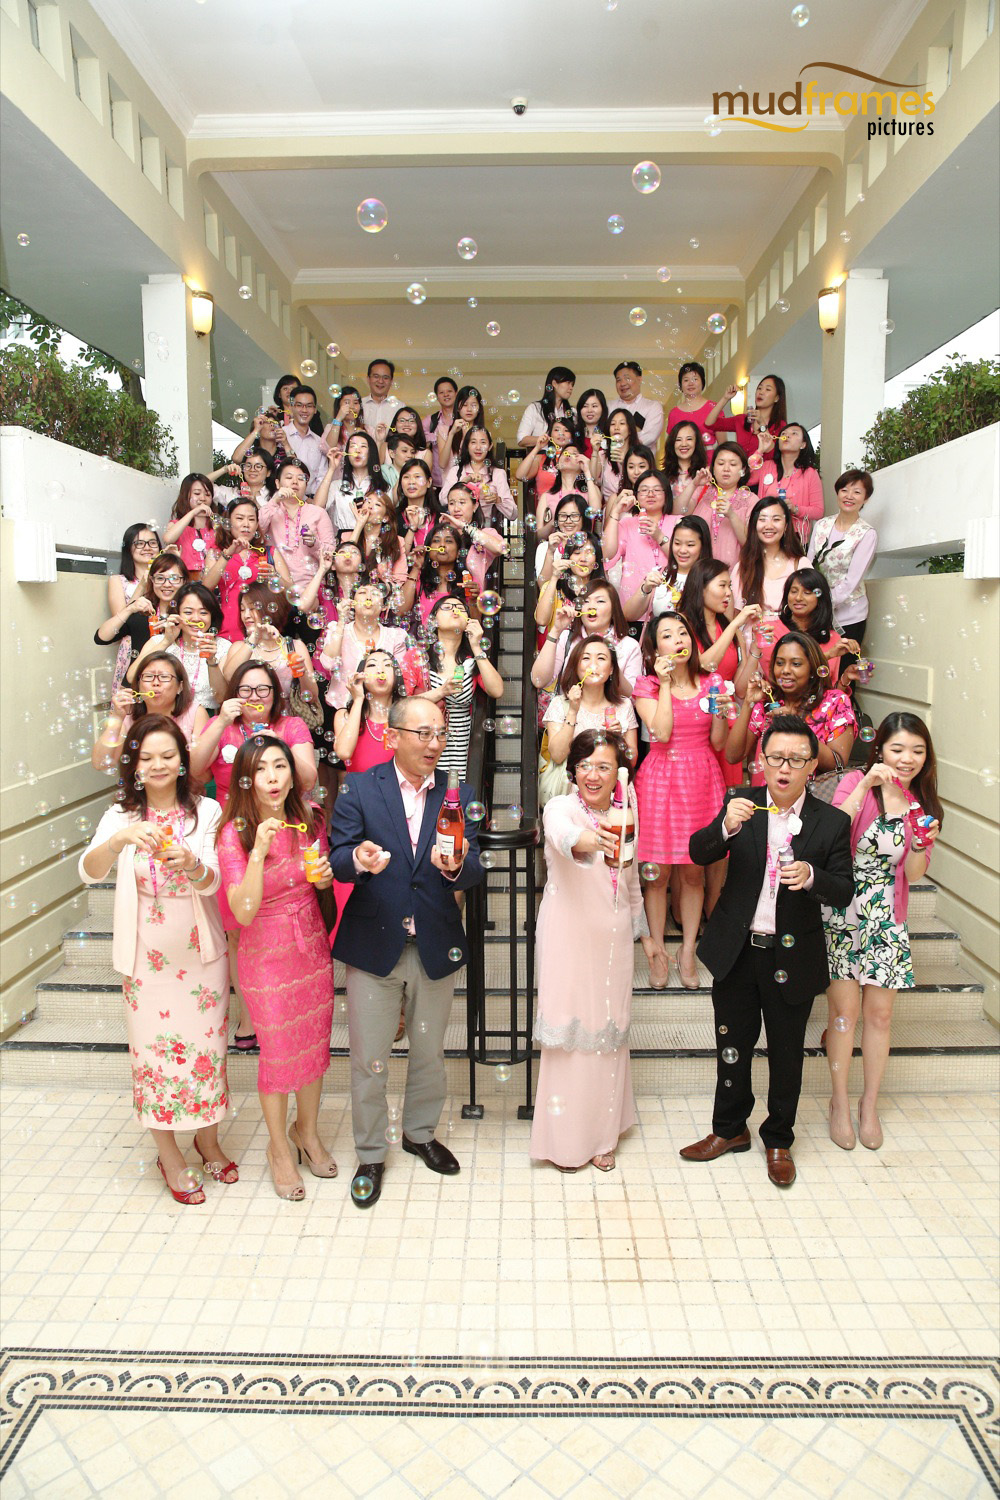 Chris Tan and Prof Datin Dr Adeeba Kamarulzaman (front middle) officiating MSD's Merck Women's Network event